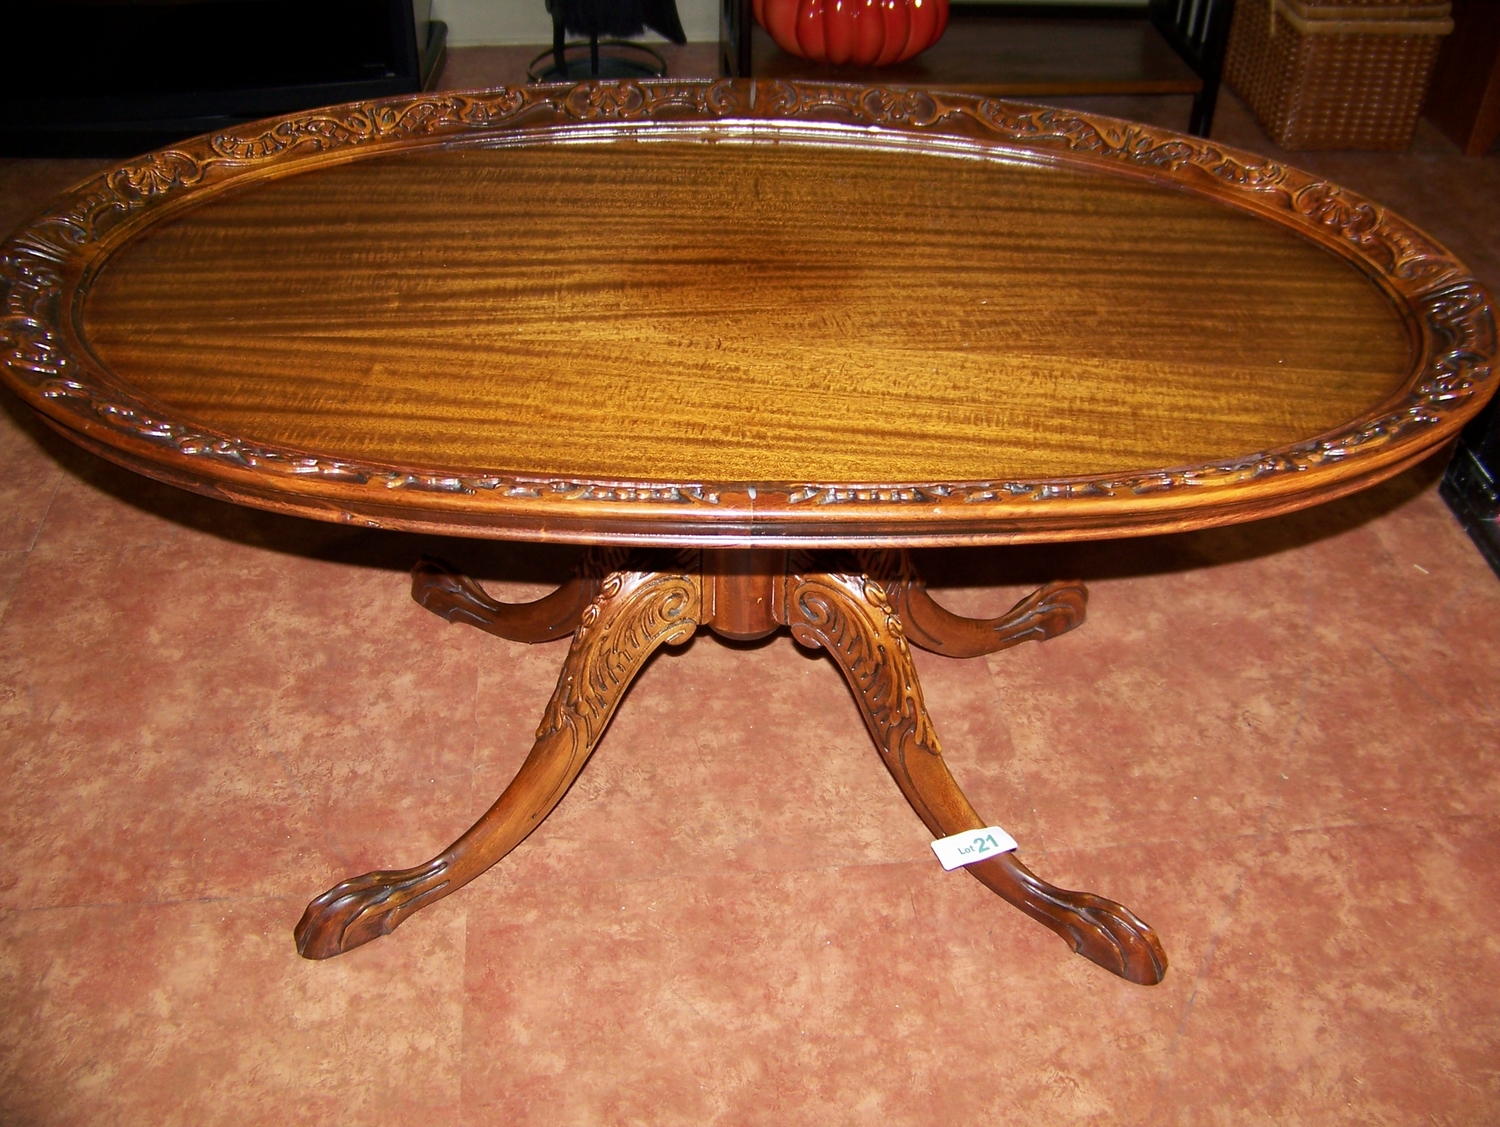 Merveilleux Antique Coffee Table With Claw Feet. Loading Zoom